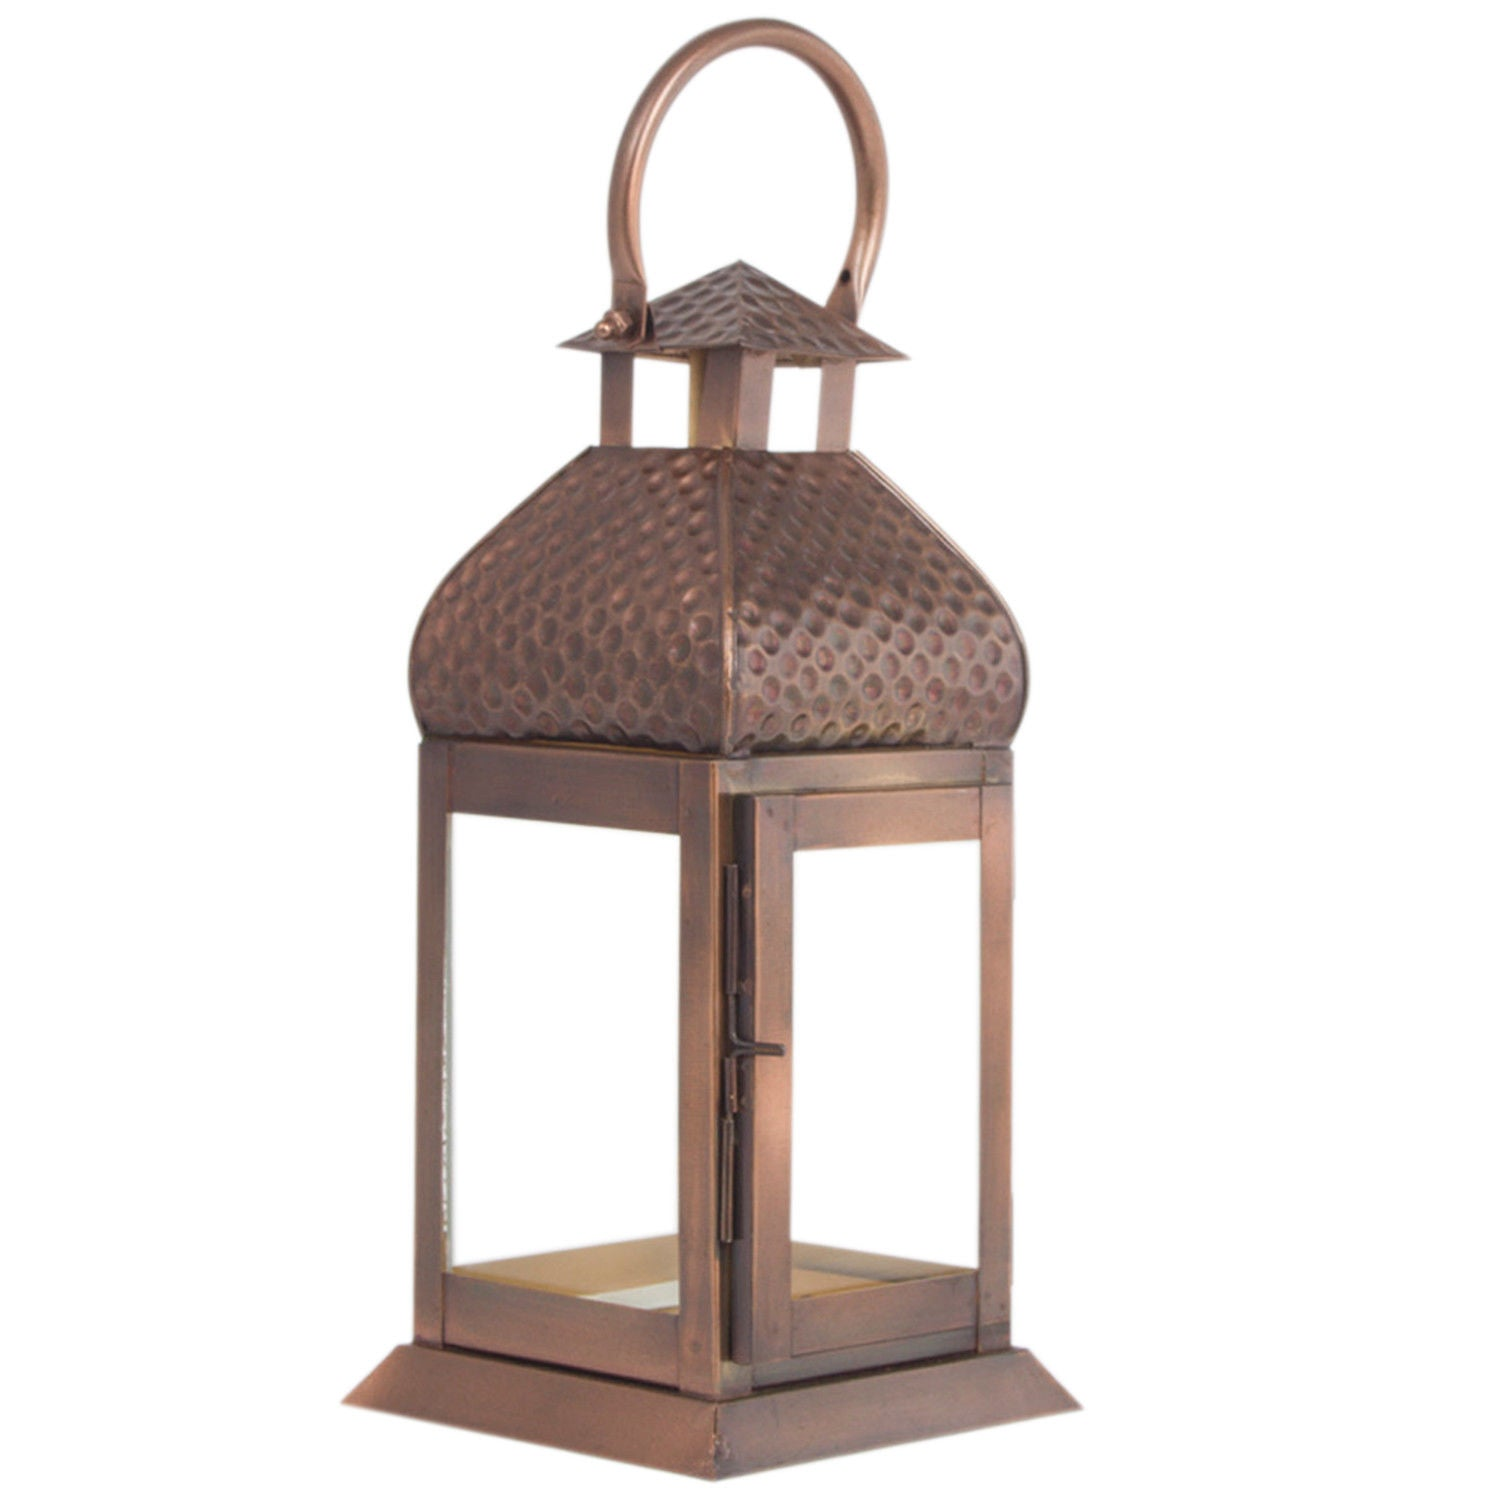 Metal Copper Finish Lantern Candle Holder Set - Pillar Candle Holder Set of 2